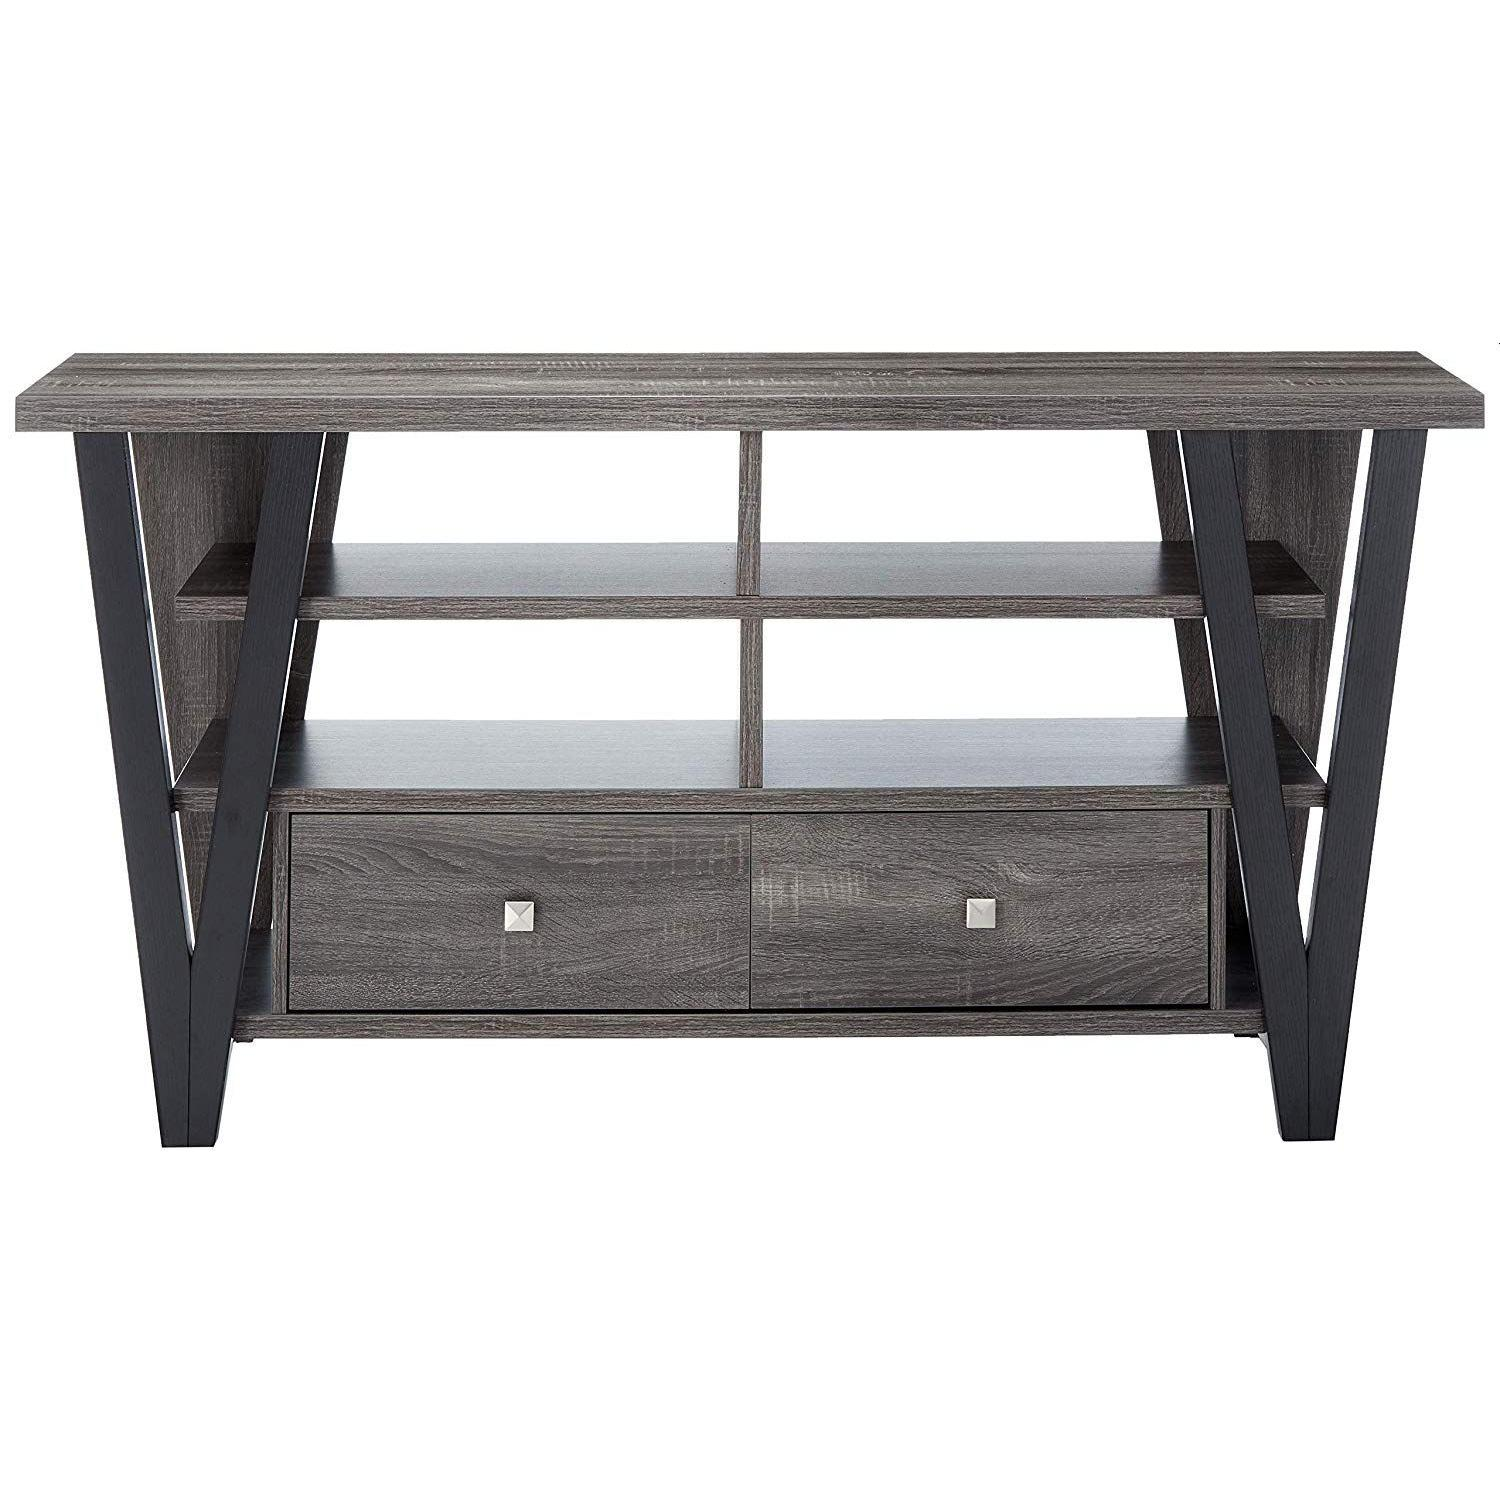 Glam Style TV Console w/ Mirror Accent - image-7